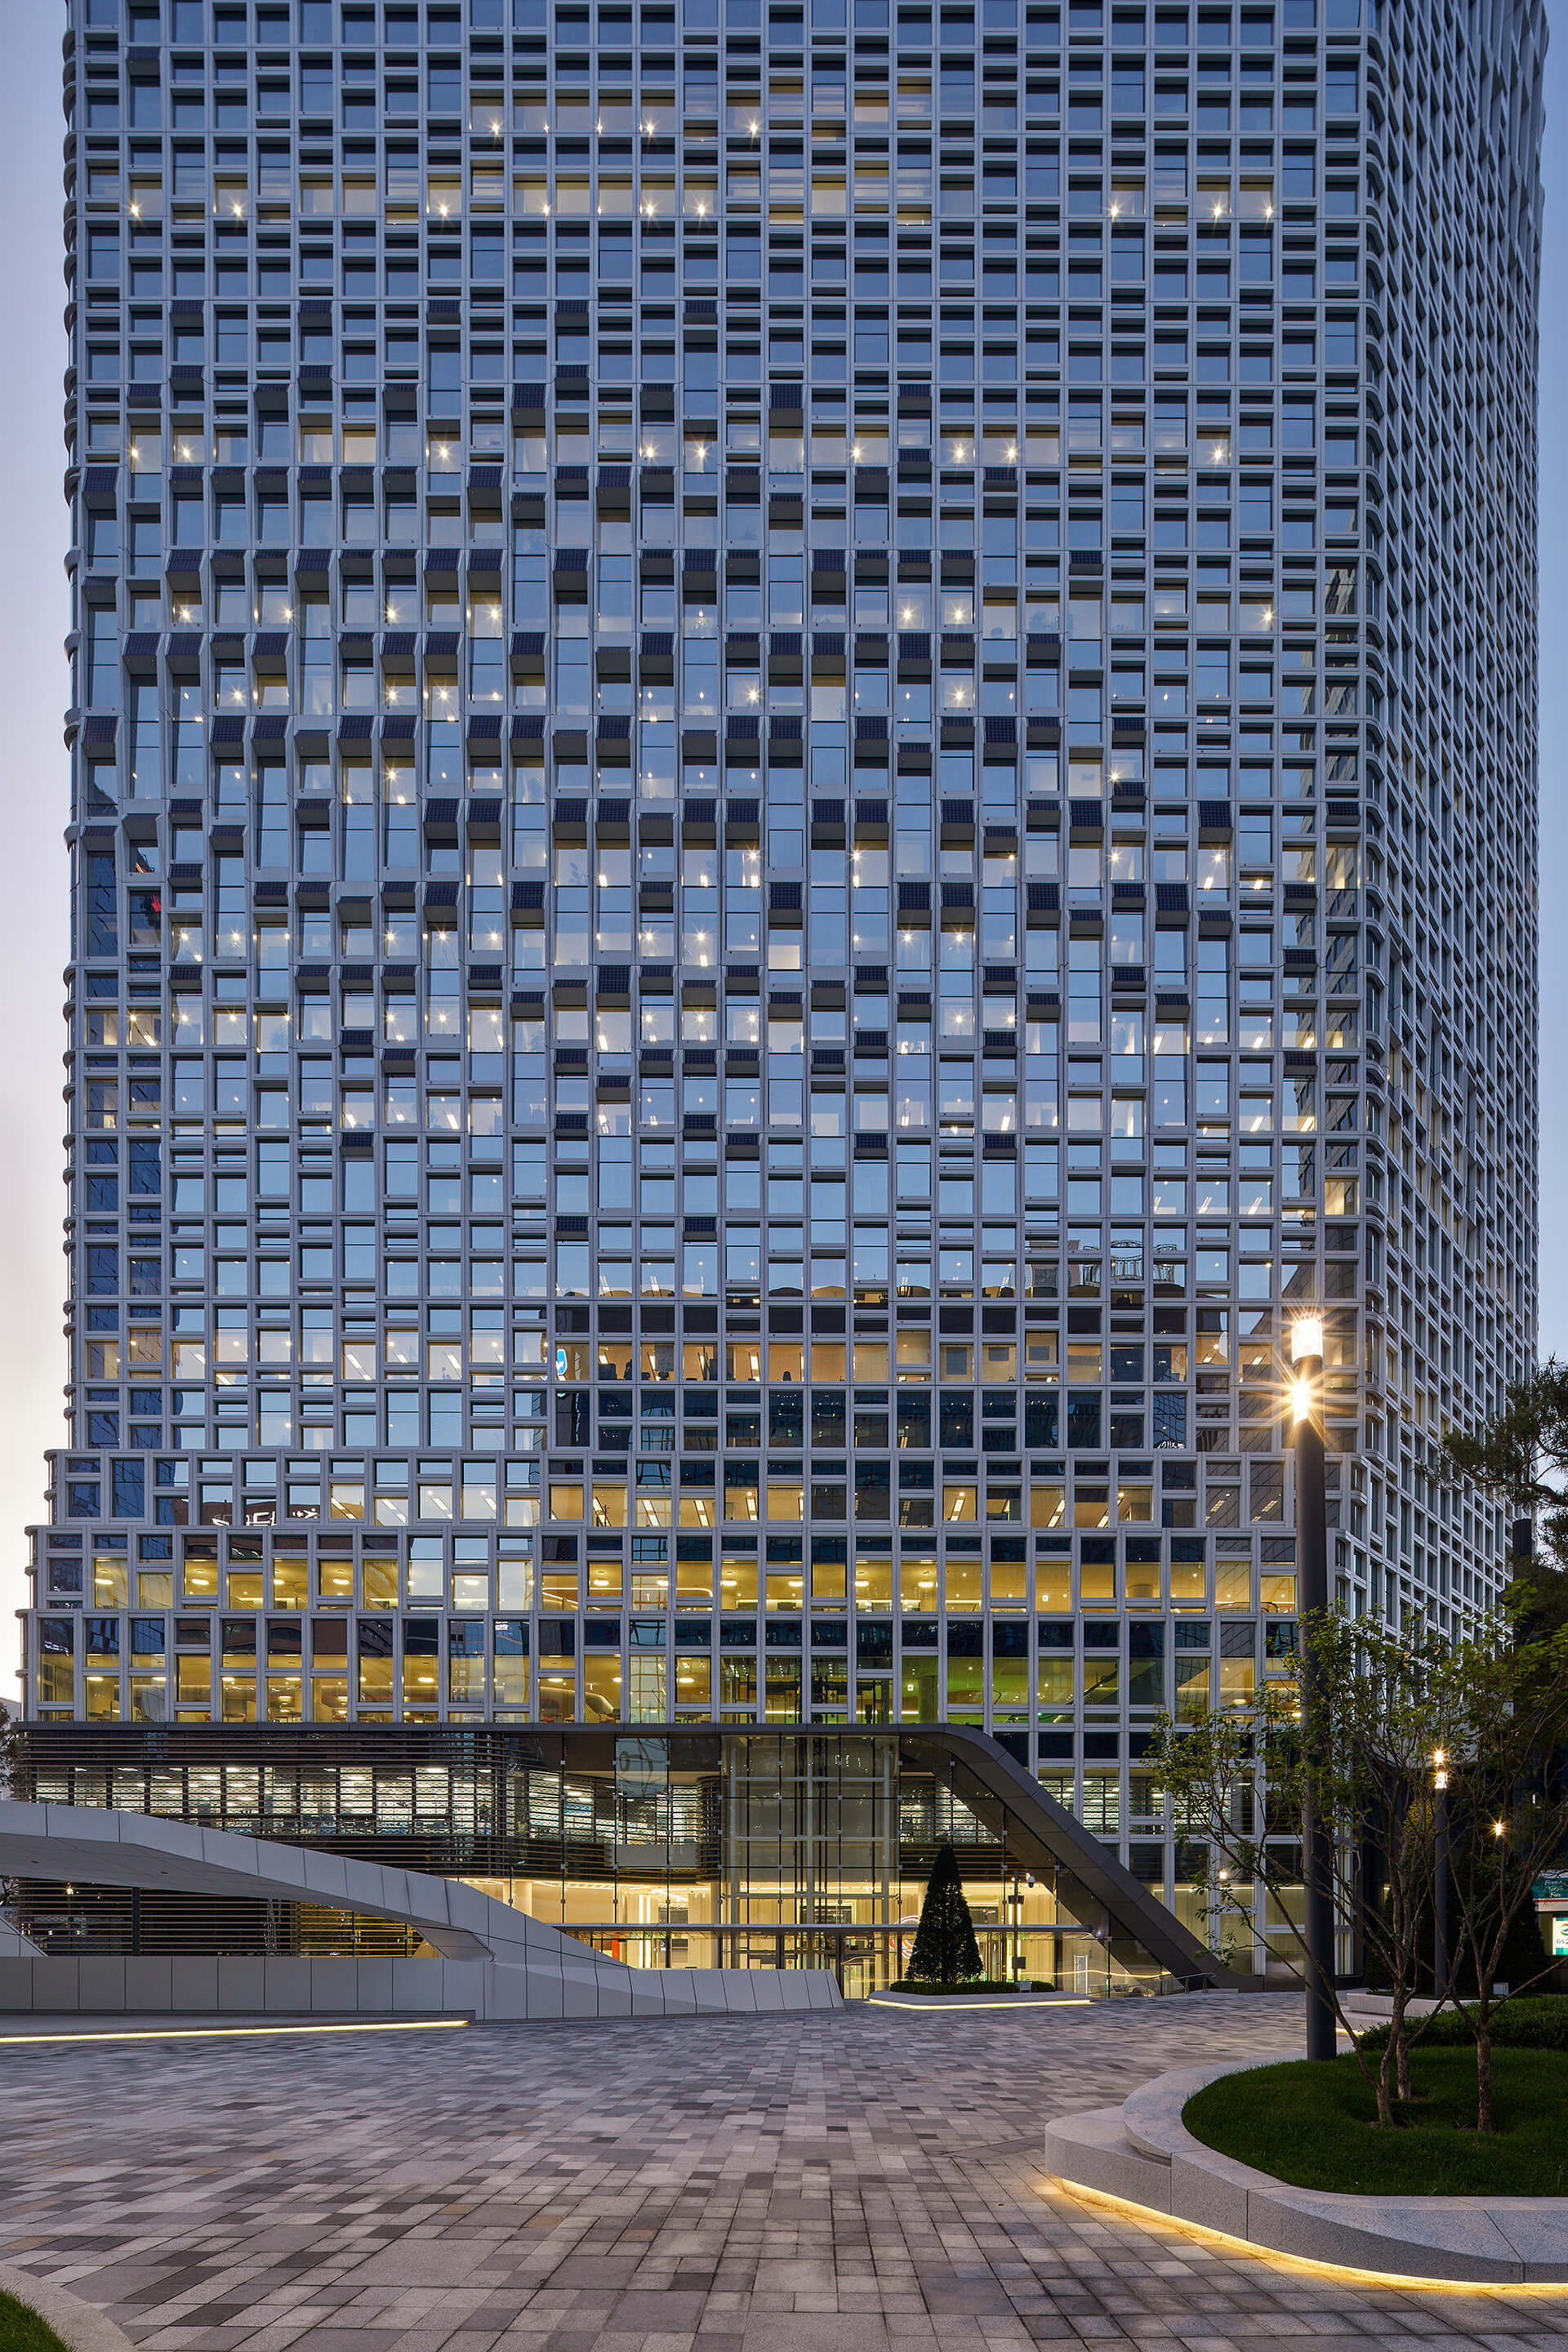 The tower's facade is fitted with a myriad of shiny solar panels, which hold countless photovoltaic cells | Hanwha Headquarters Remodelling by UNStudio | STIRworld